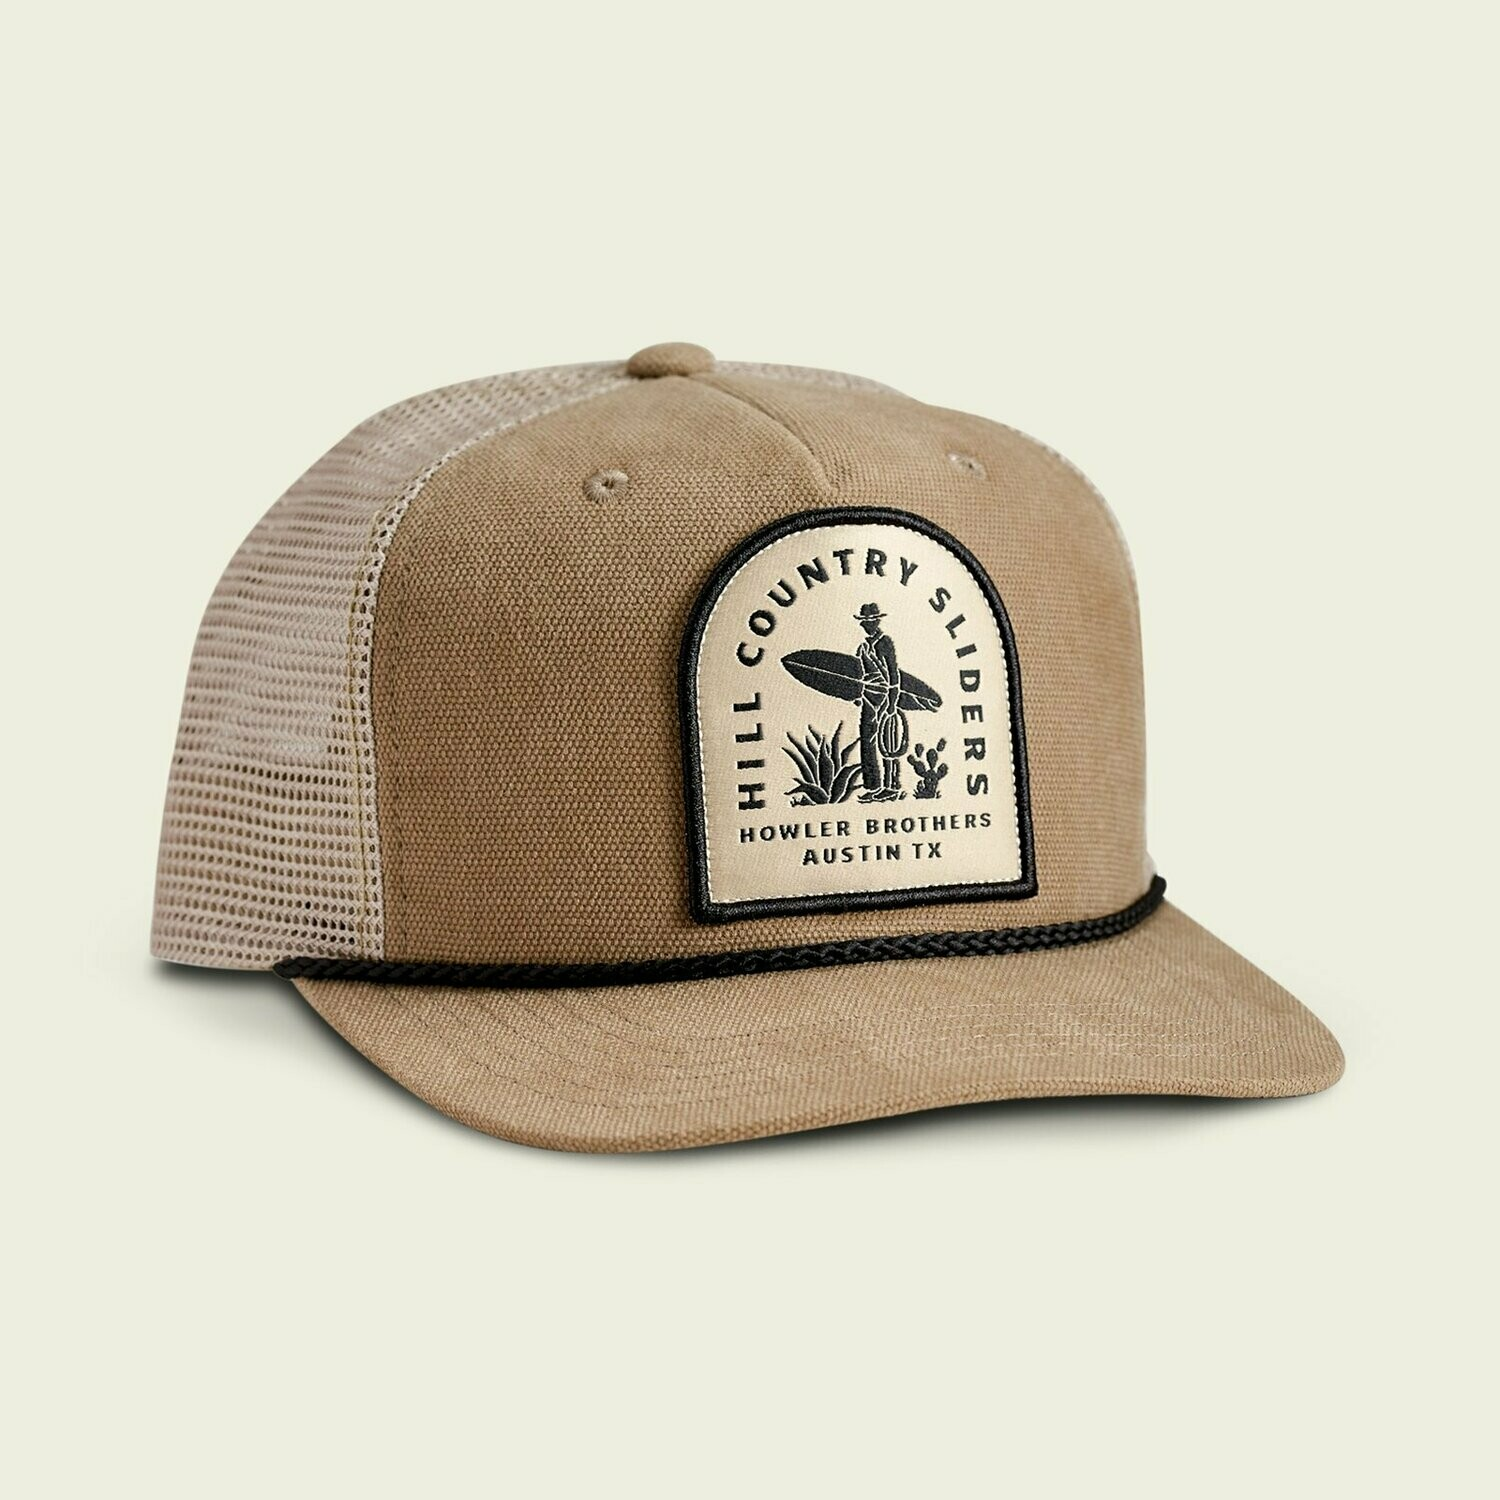 Howler Bros Structured SnapBack Trucker Hat Hill Country Sliders TAUPE